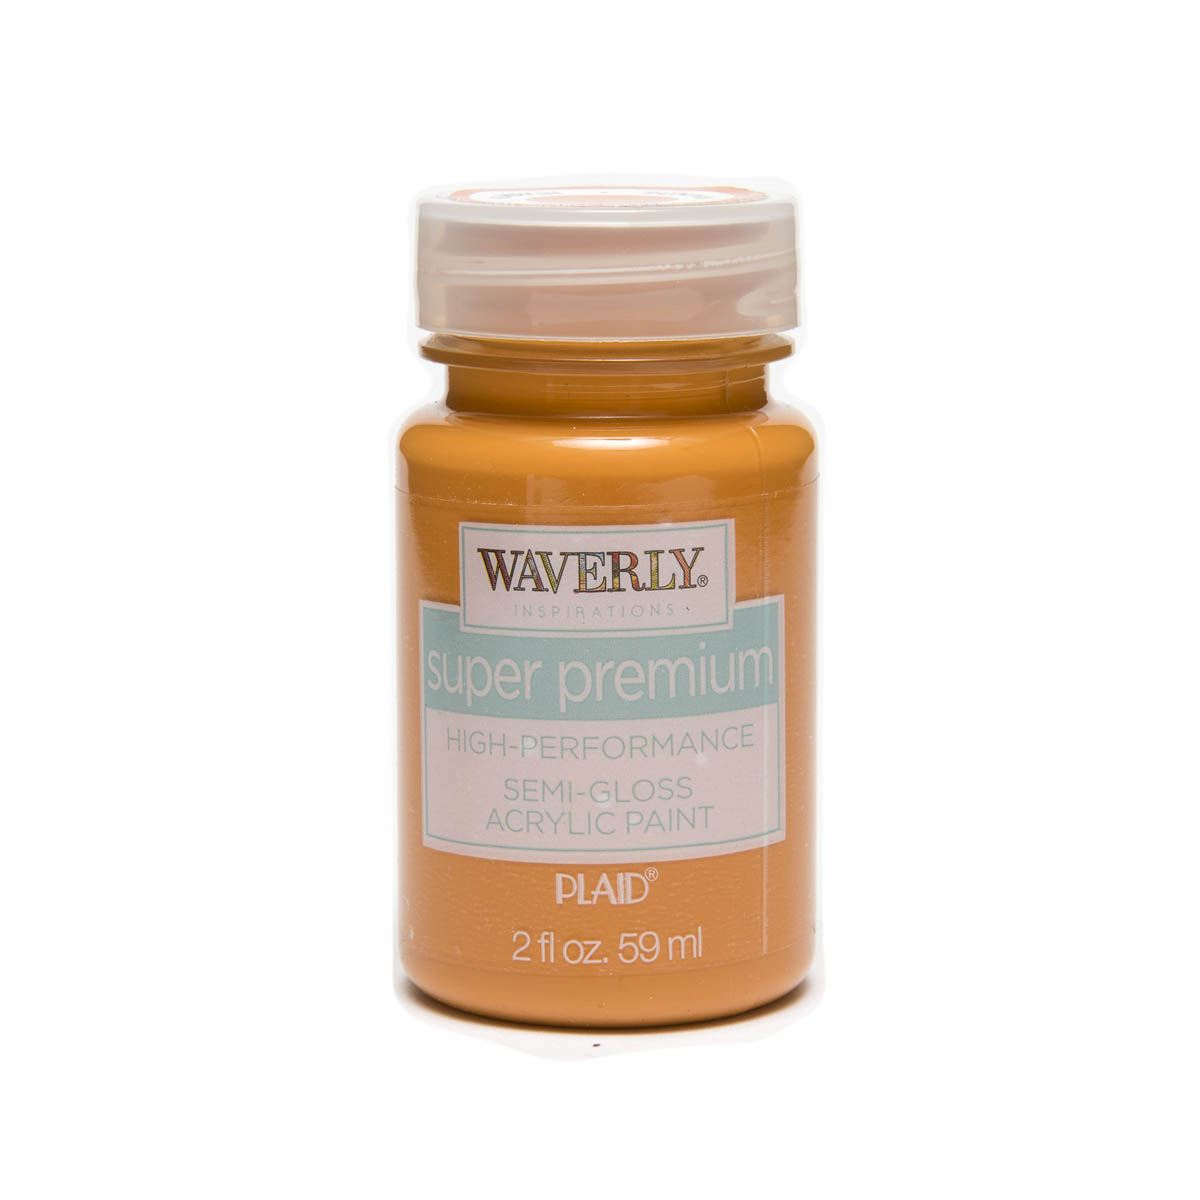 Waverly ® Inspirations Super Premium Semi-Gloss Acrylic Paint - Pumpkin, 2 oz.